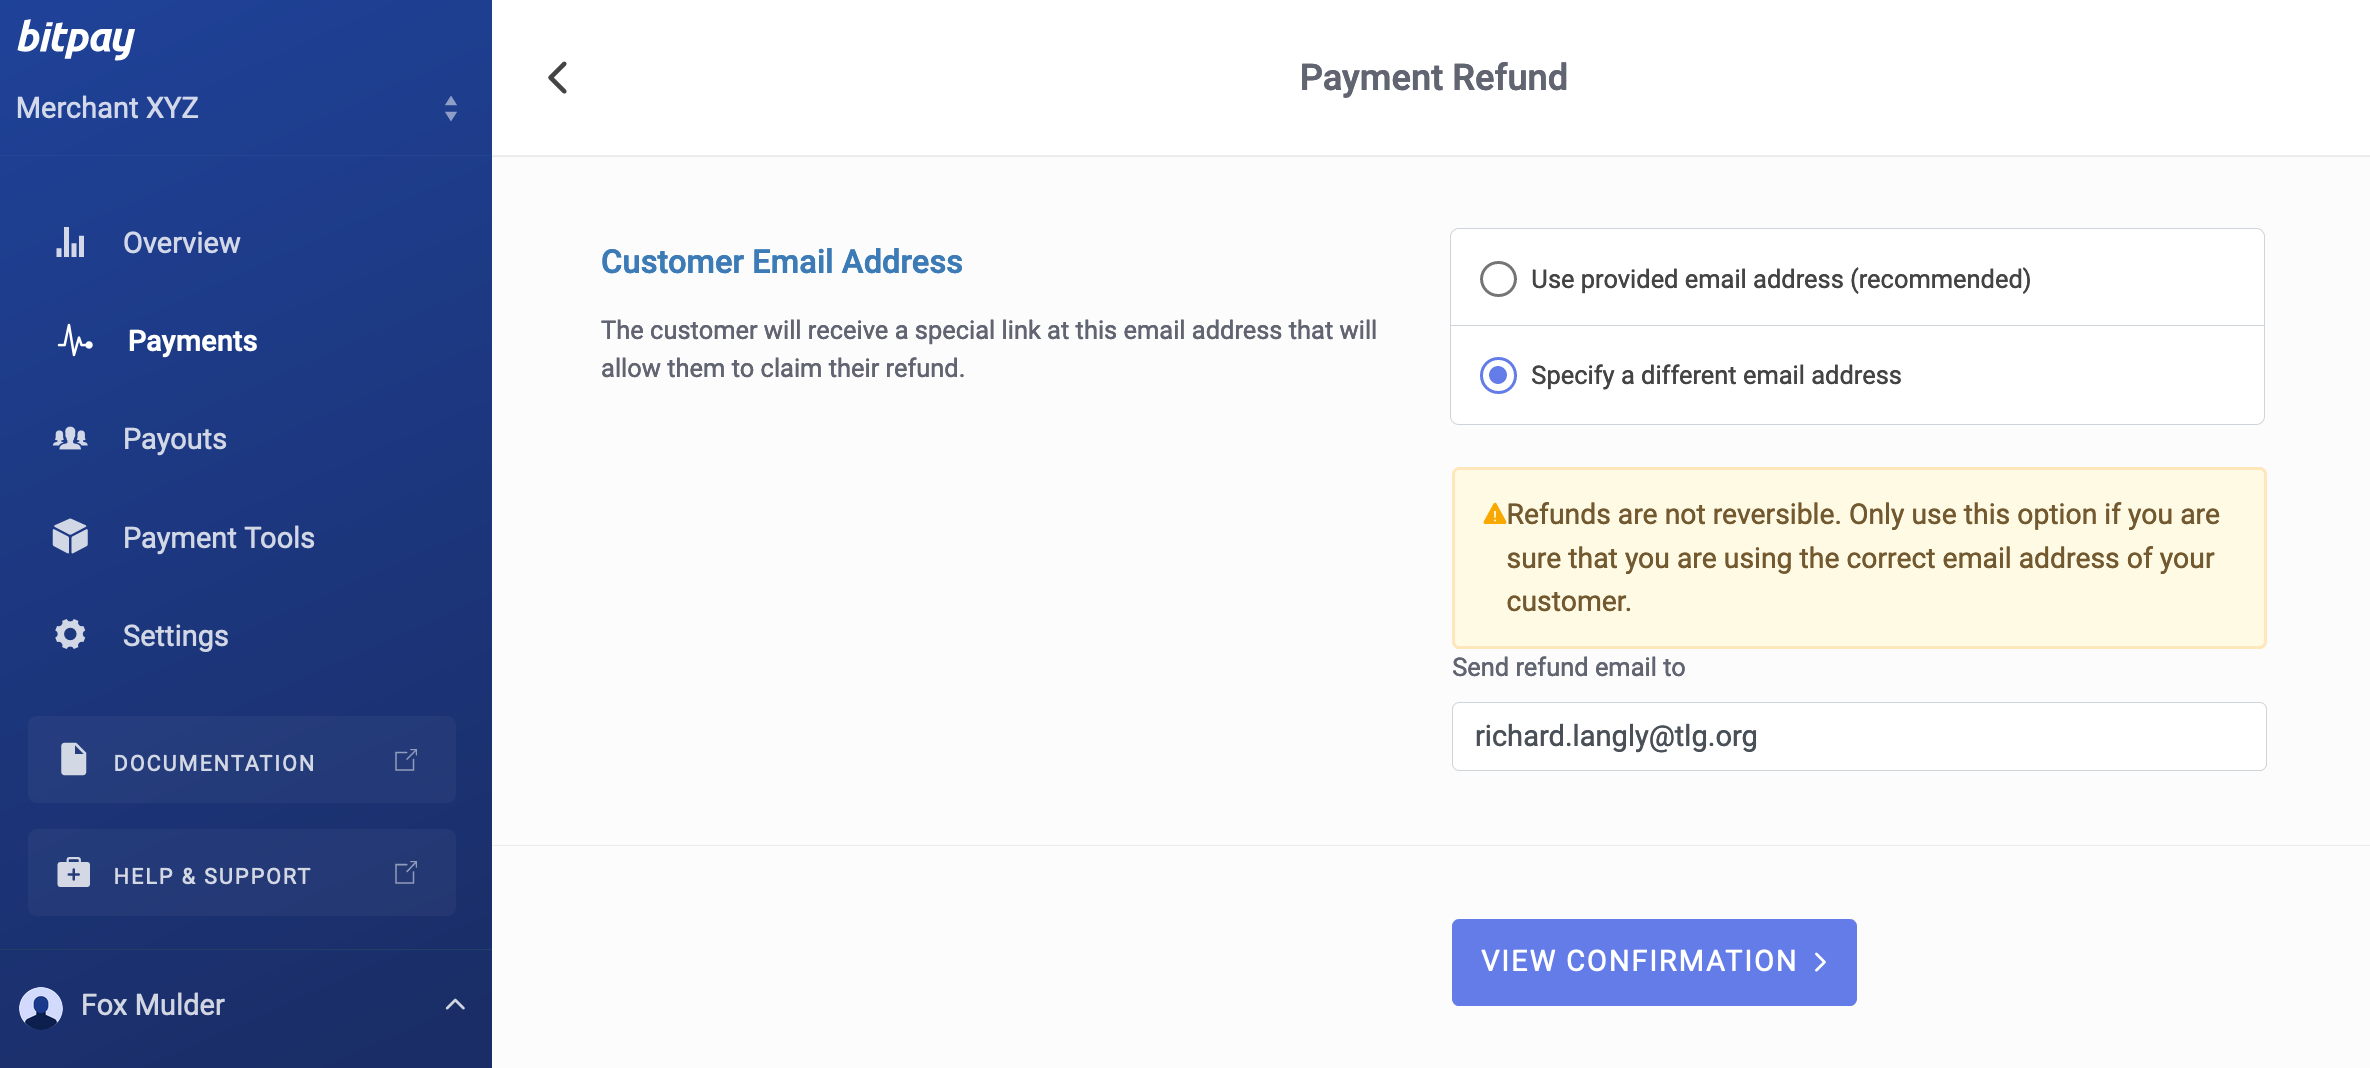 dashboard_payment_refund_email_change.png